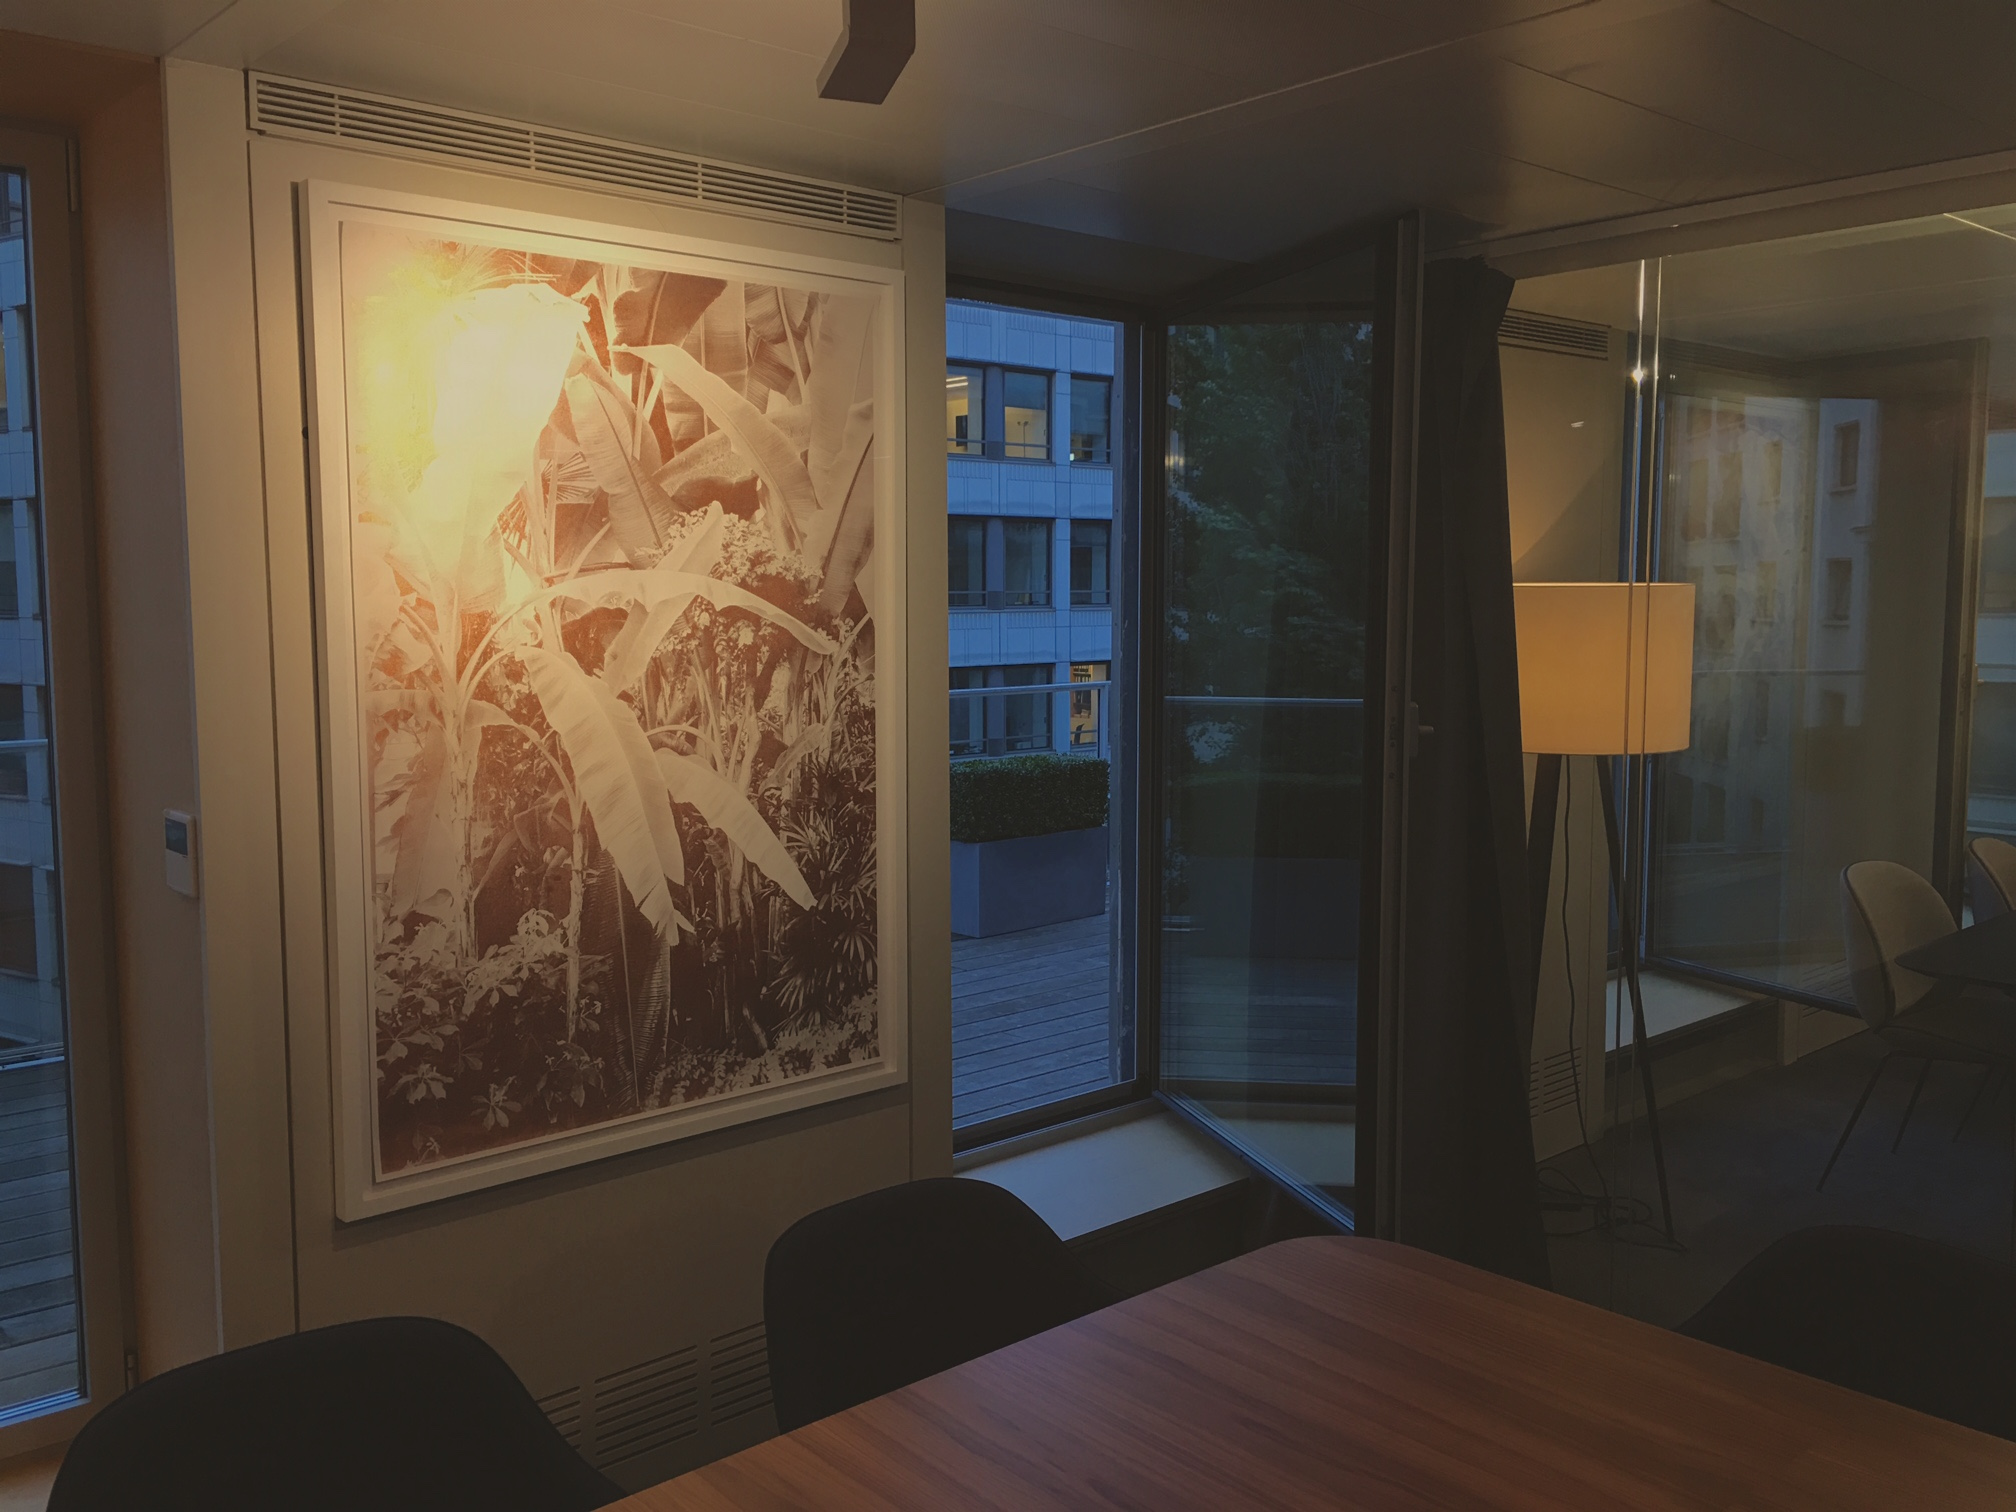 Meeting-room with the Roman Moriceau artwork